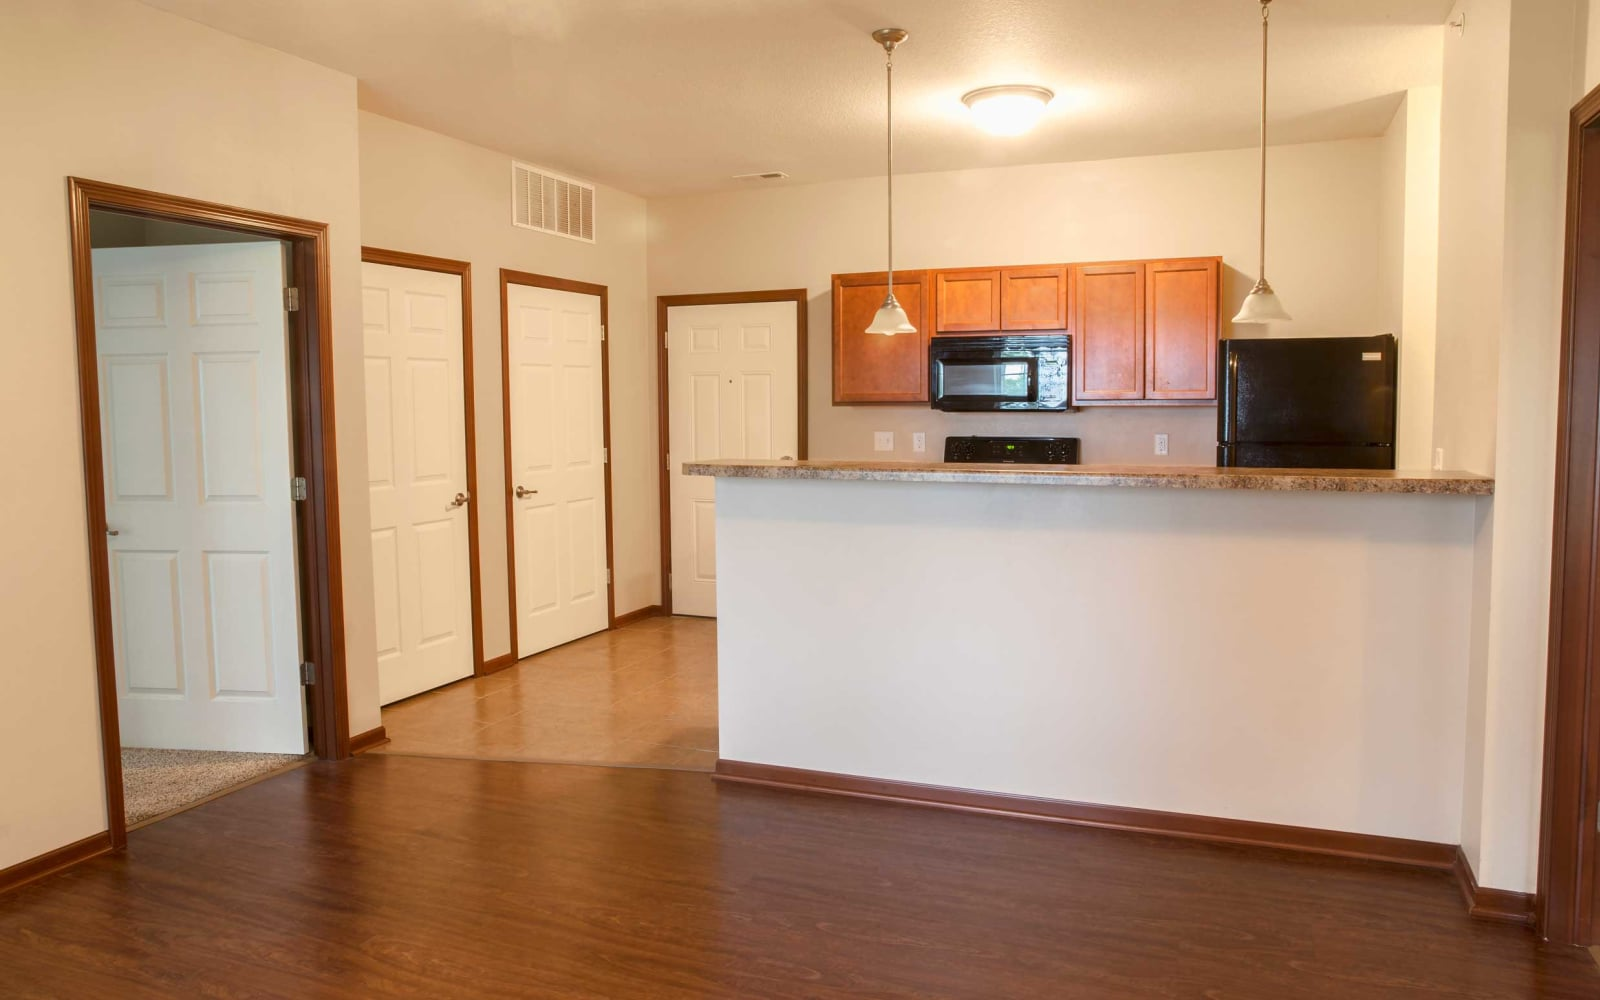 Kitchen with bar seating and doors to bedrooms at Westwood Village in Ames, Iowa